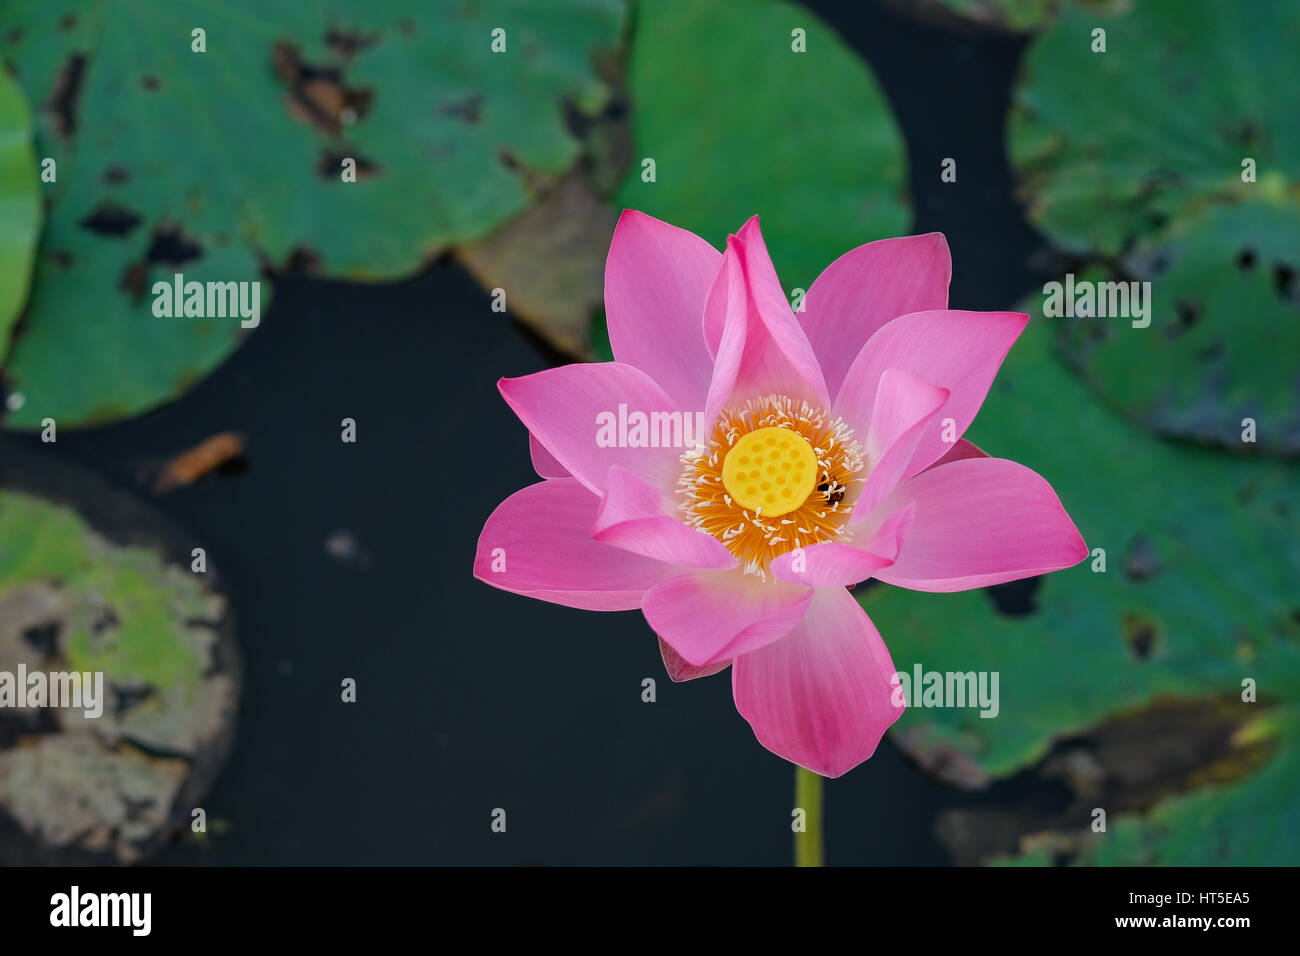 Beautiful Flowers Background Beauty Blossom Pink Lotus Flower A